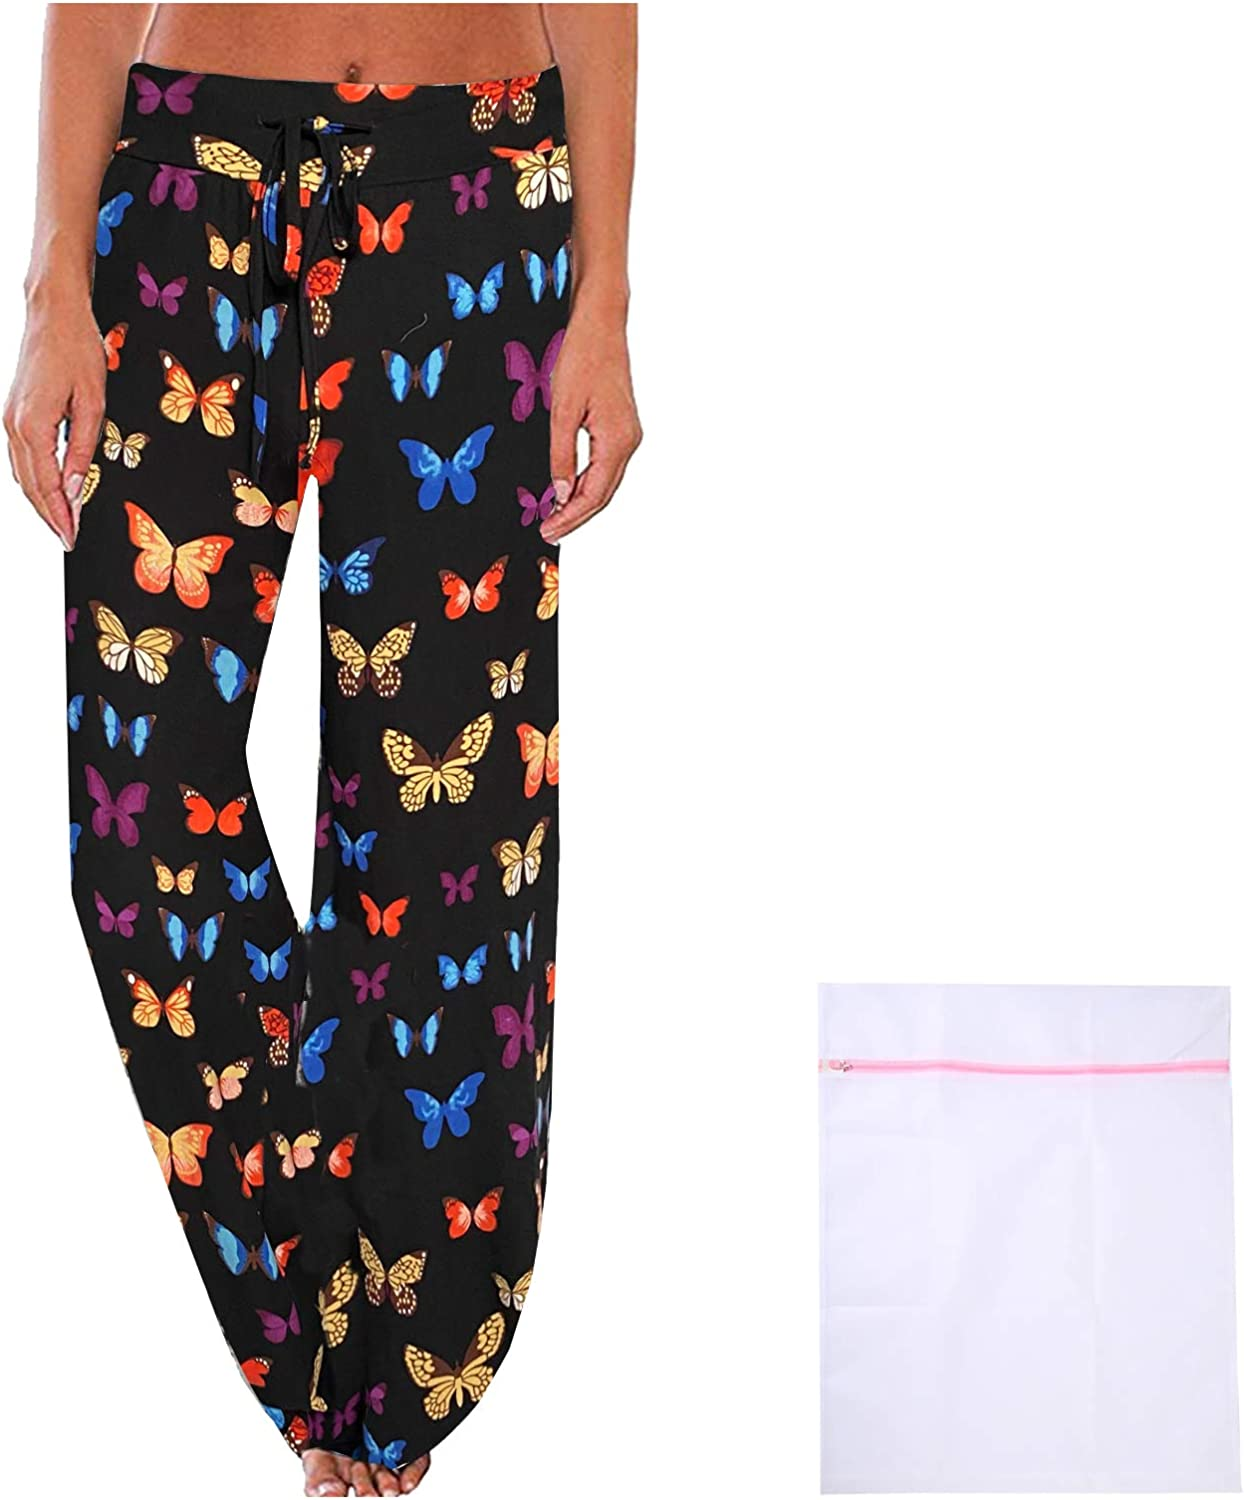 iniber Women's Comfy Pajama Pants Casual Lounge Pant Wide Leg Stretch Drawstring Palazzo with Laundry Bag